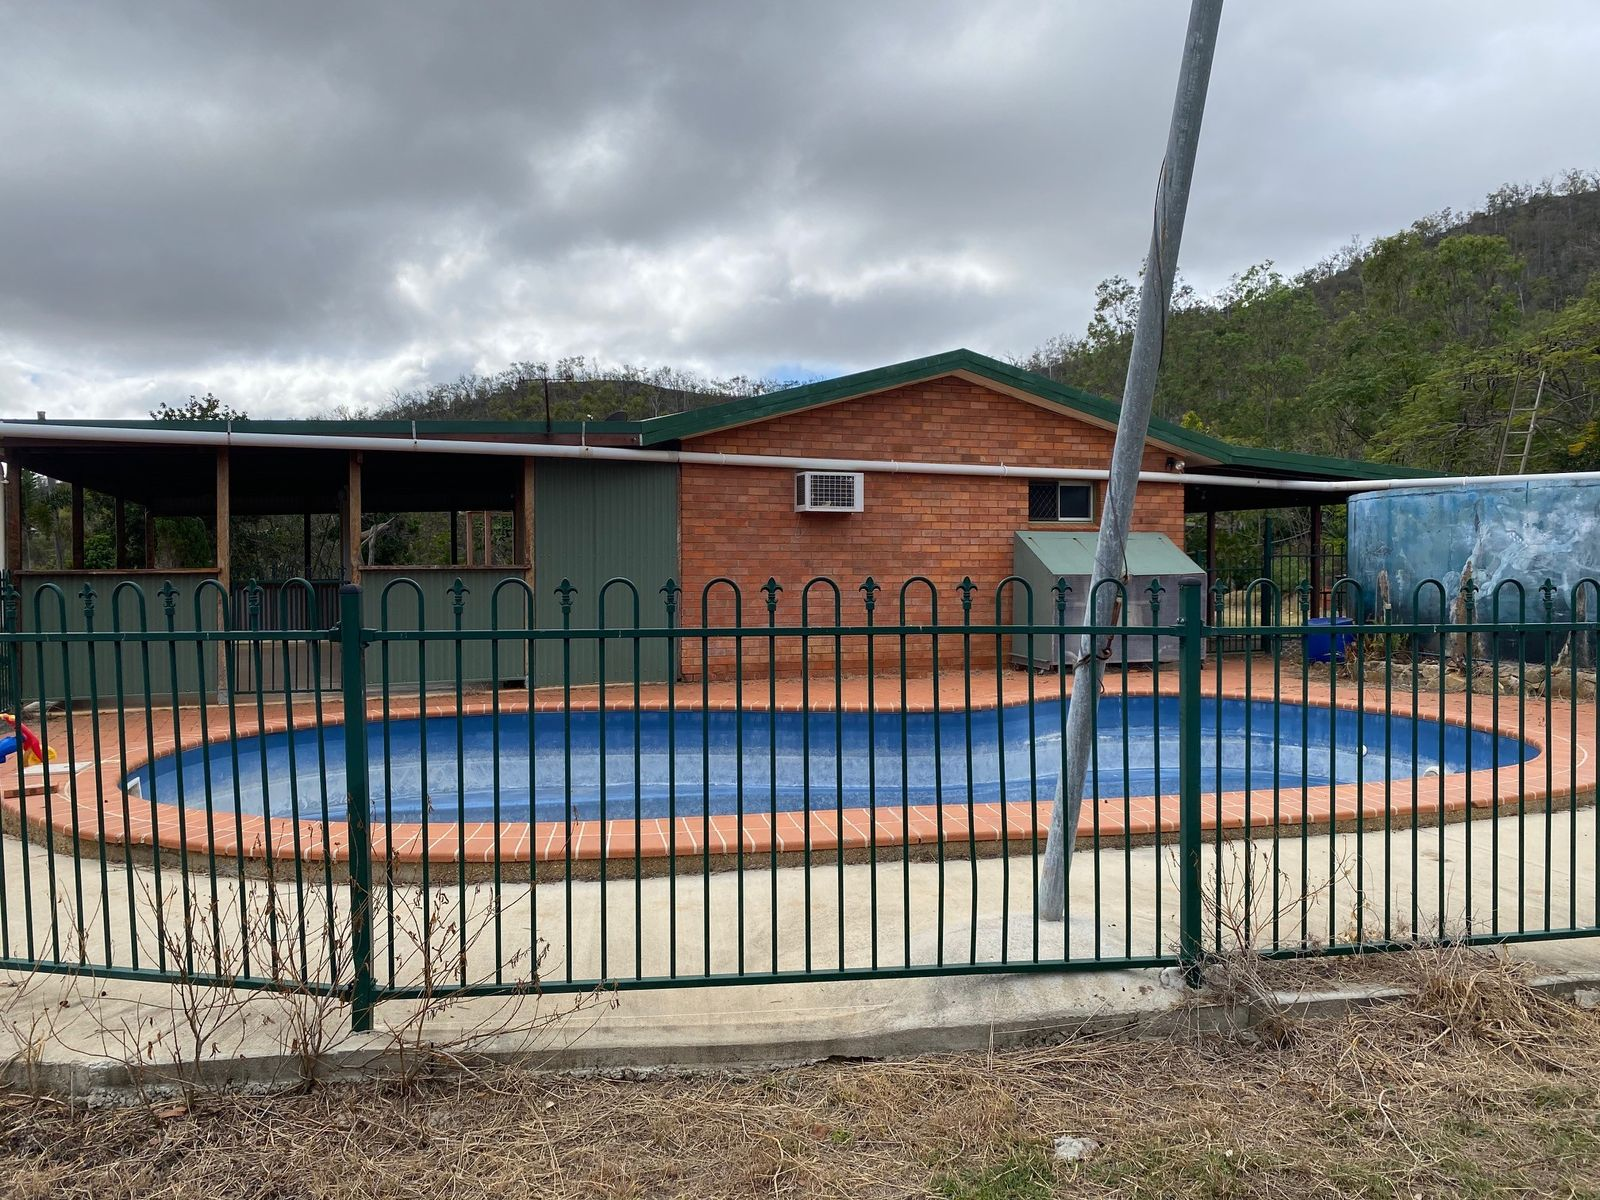 370 Aremby Road, Bouldercombe, QLD 4702